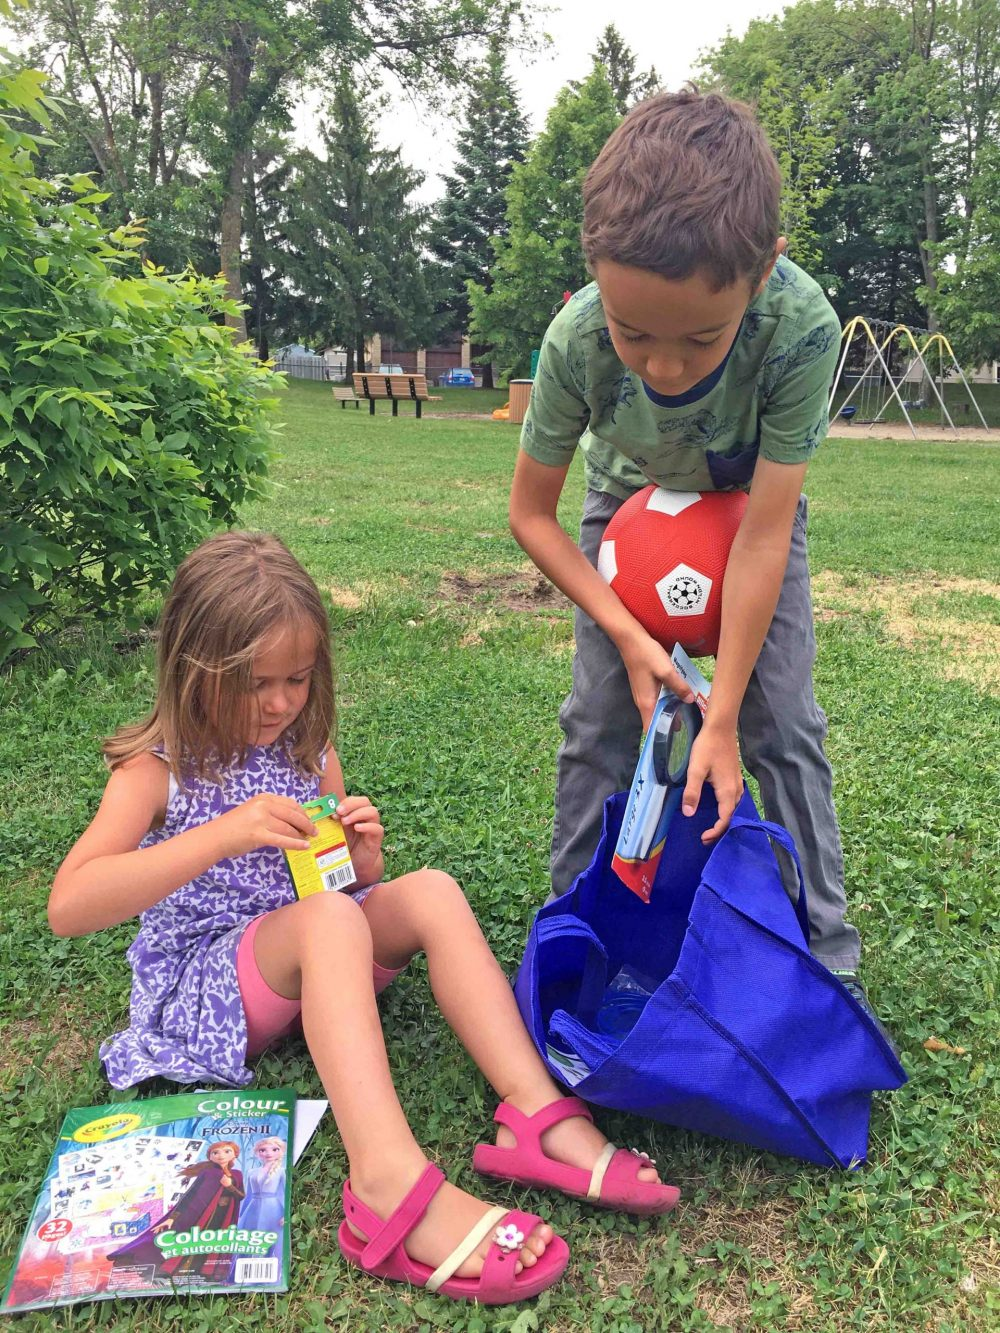 City to distribute 5,000 Fun Kits to children in Laval